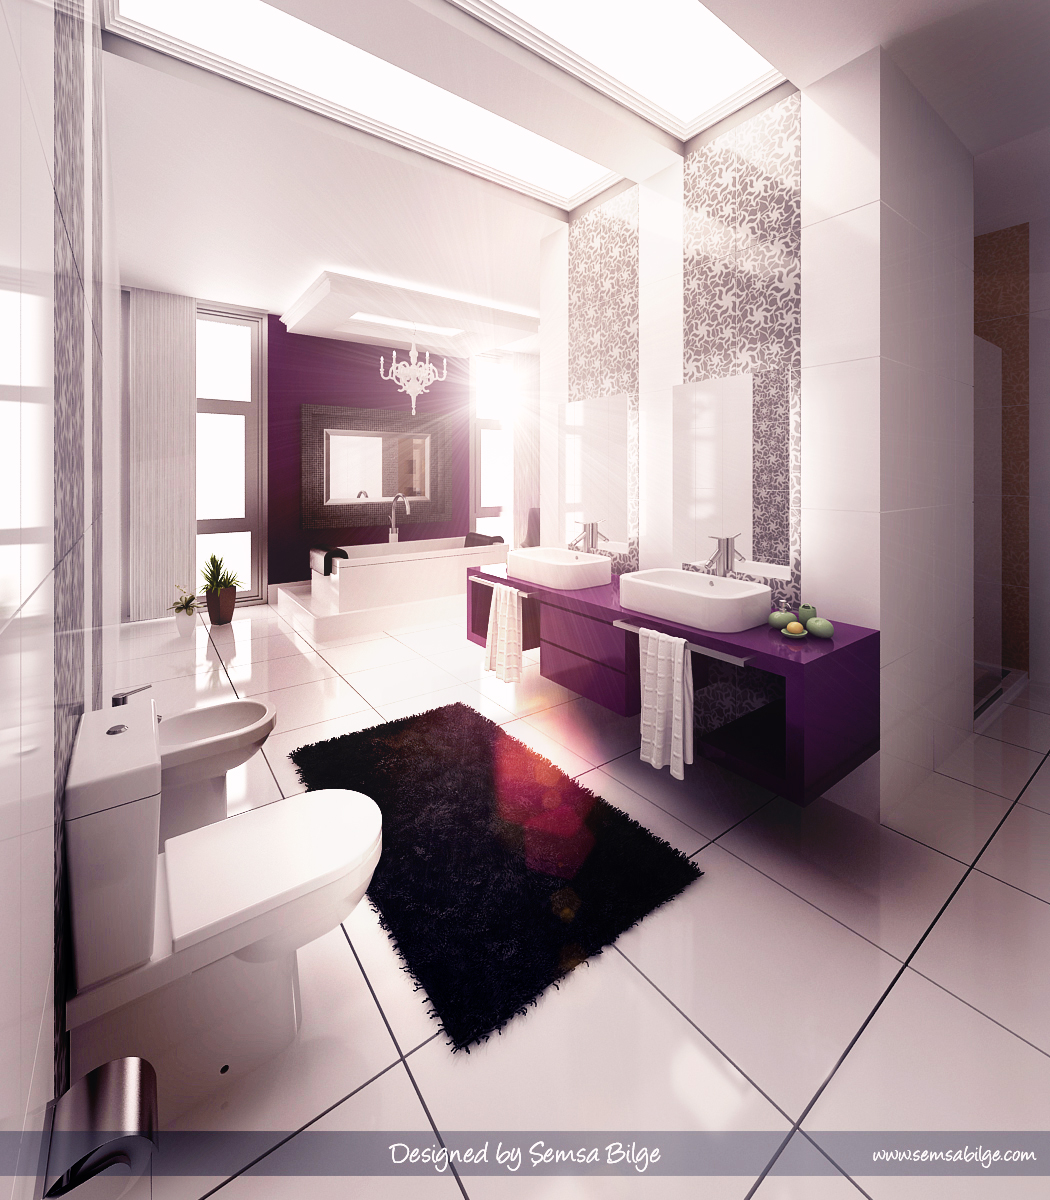 Bathroom Designing inspiring bathroom designs for the soul